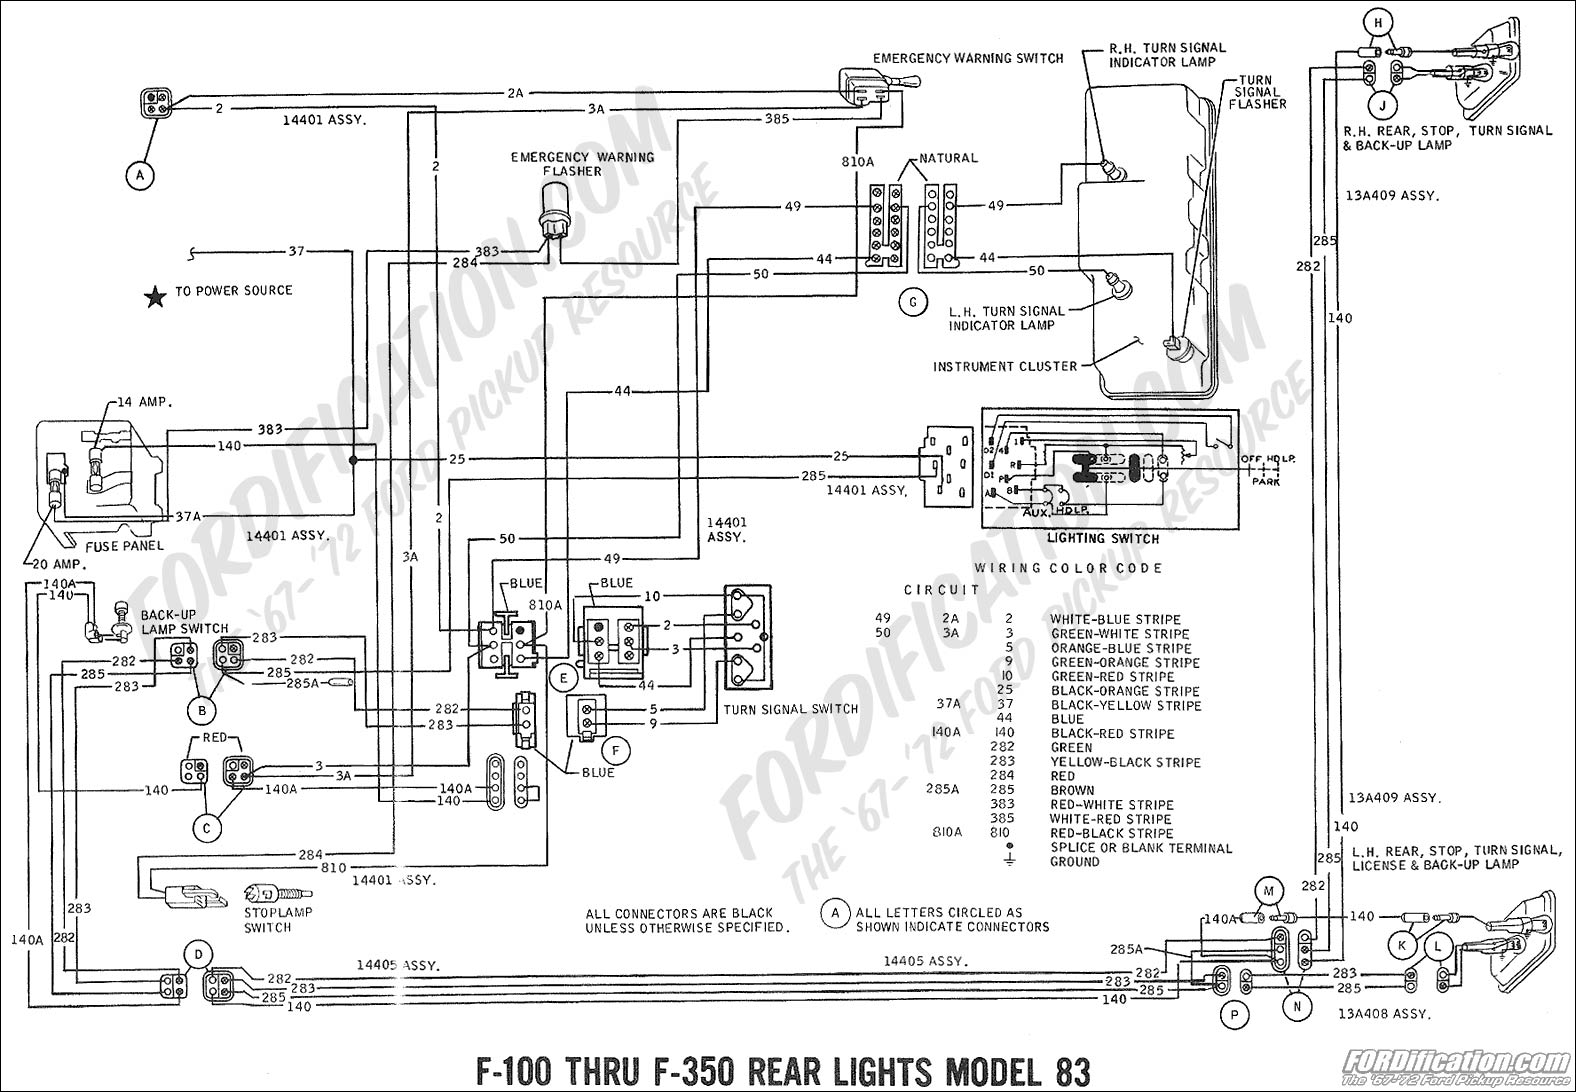 1976 ford f100 ignition wiring diagram wiring diagram